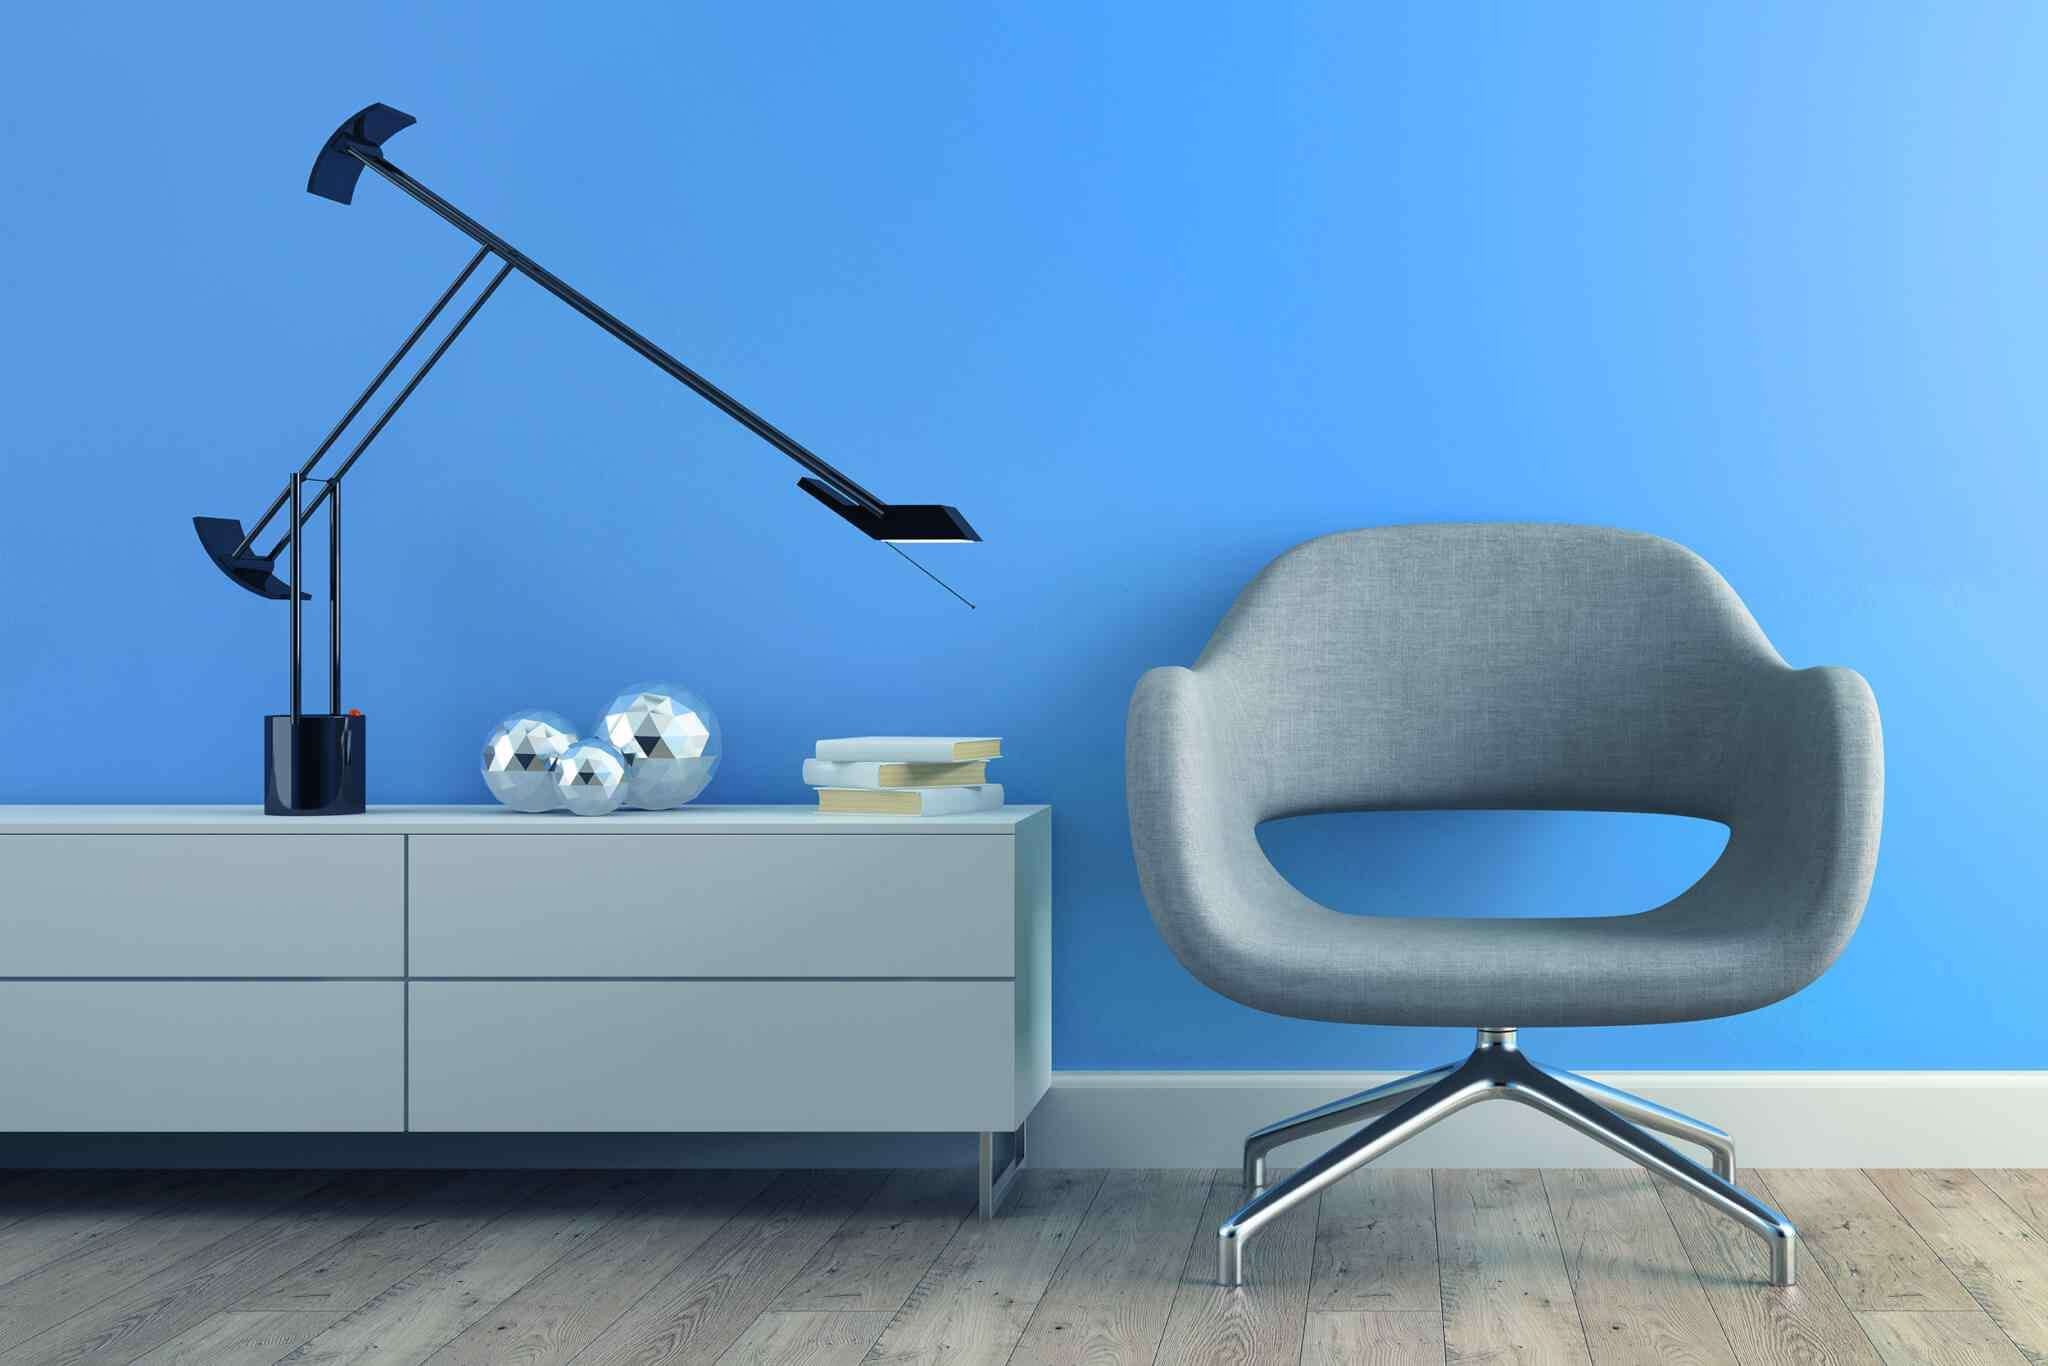 https://xbim.hk/wp-content/uploads/2017/05/image-chair-blue-wall.jpg